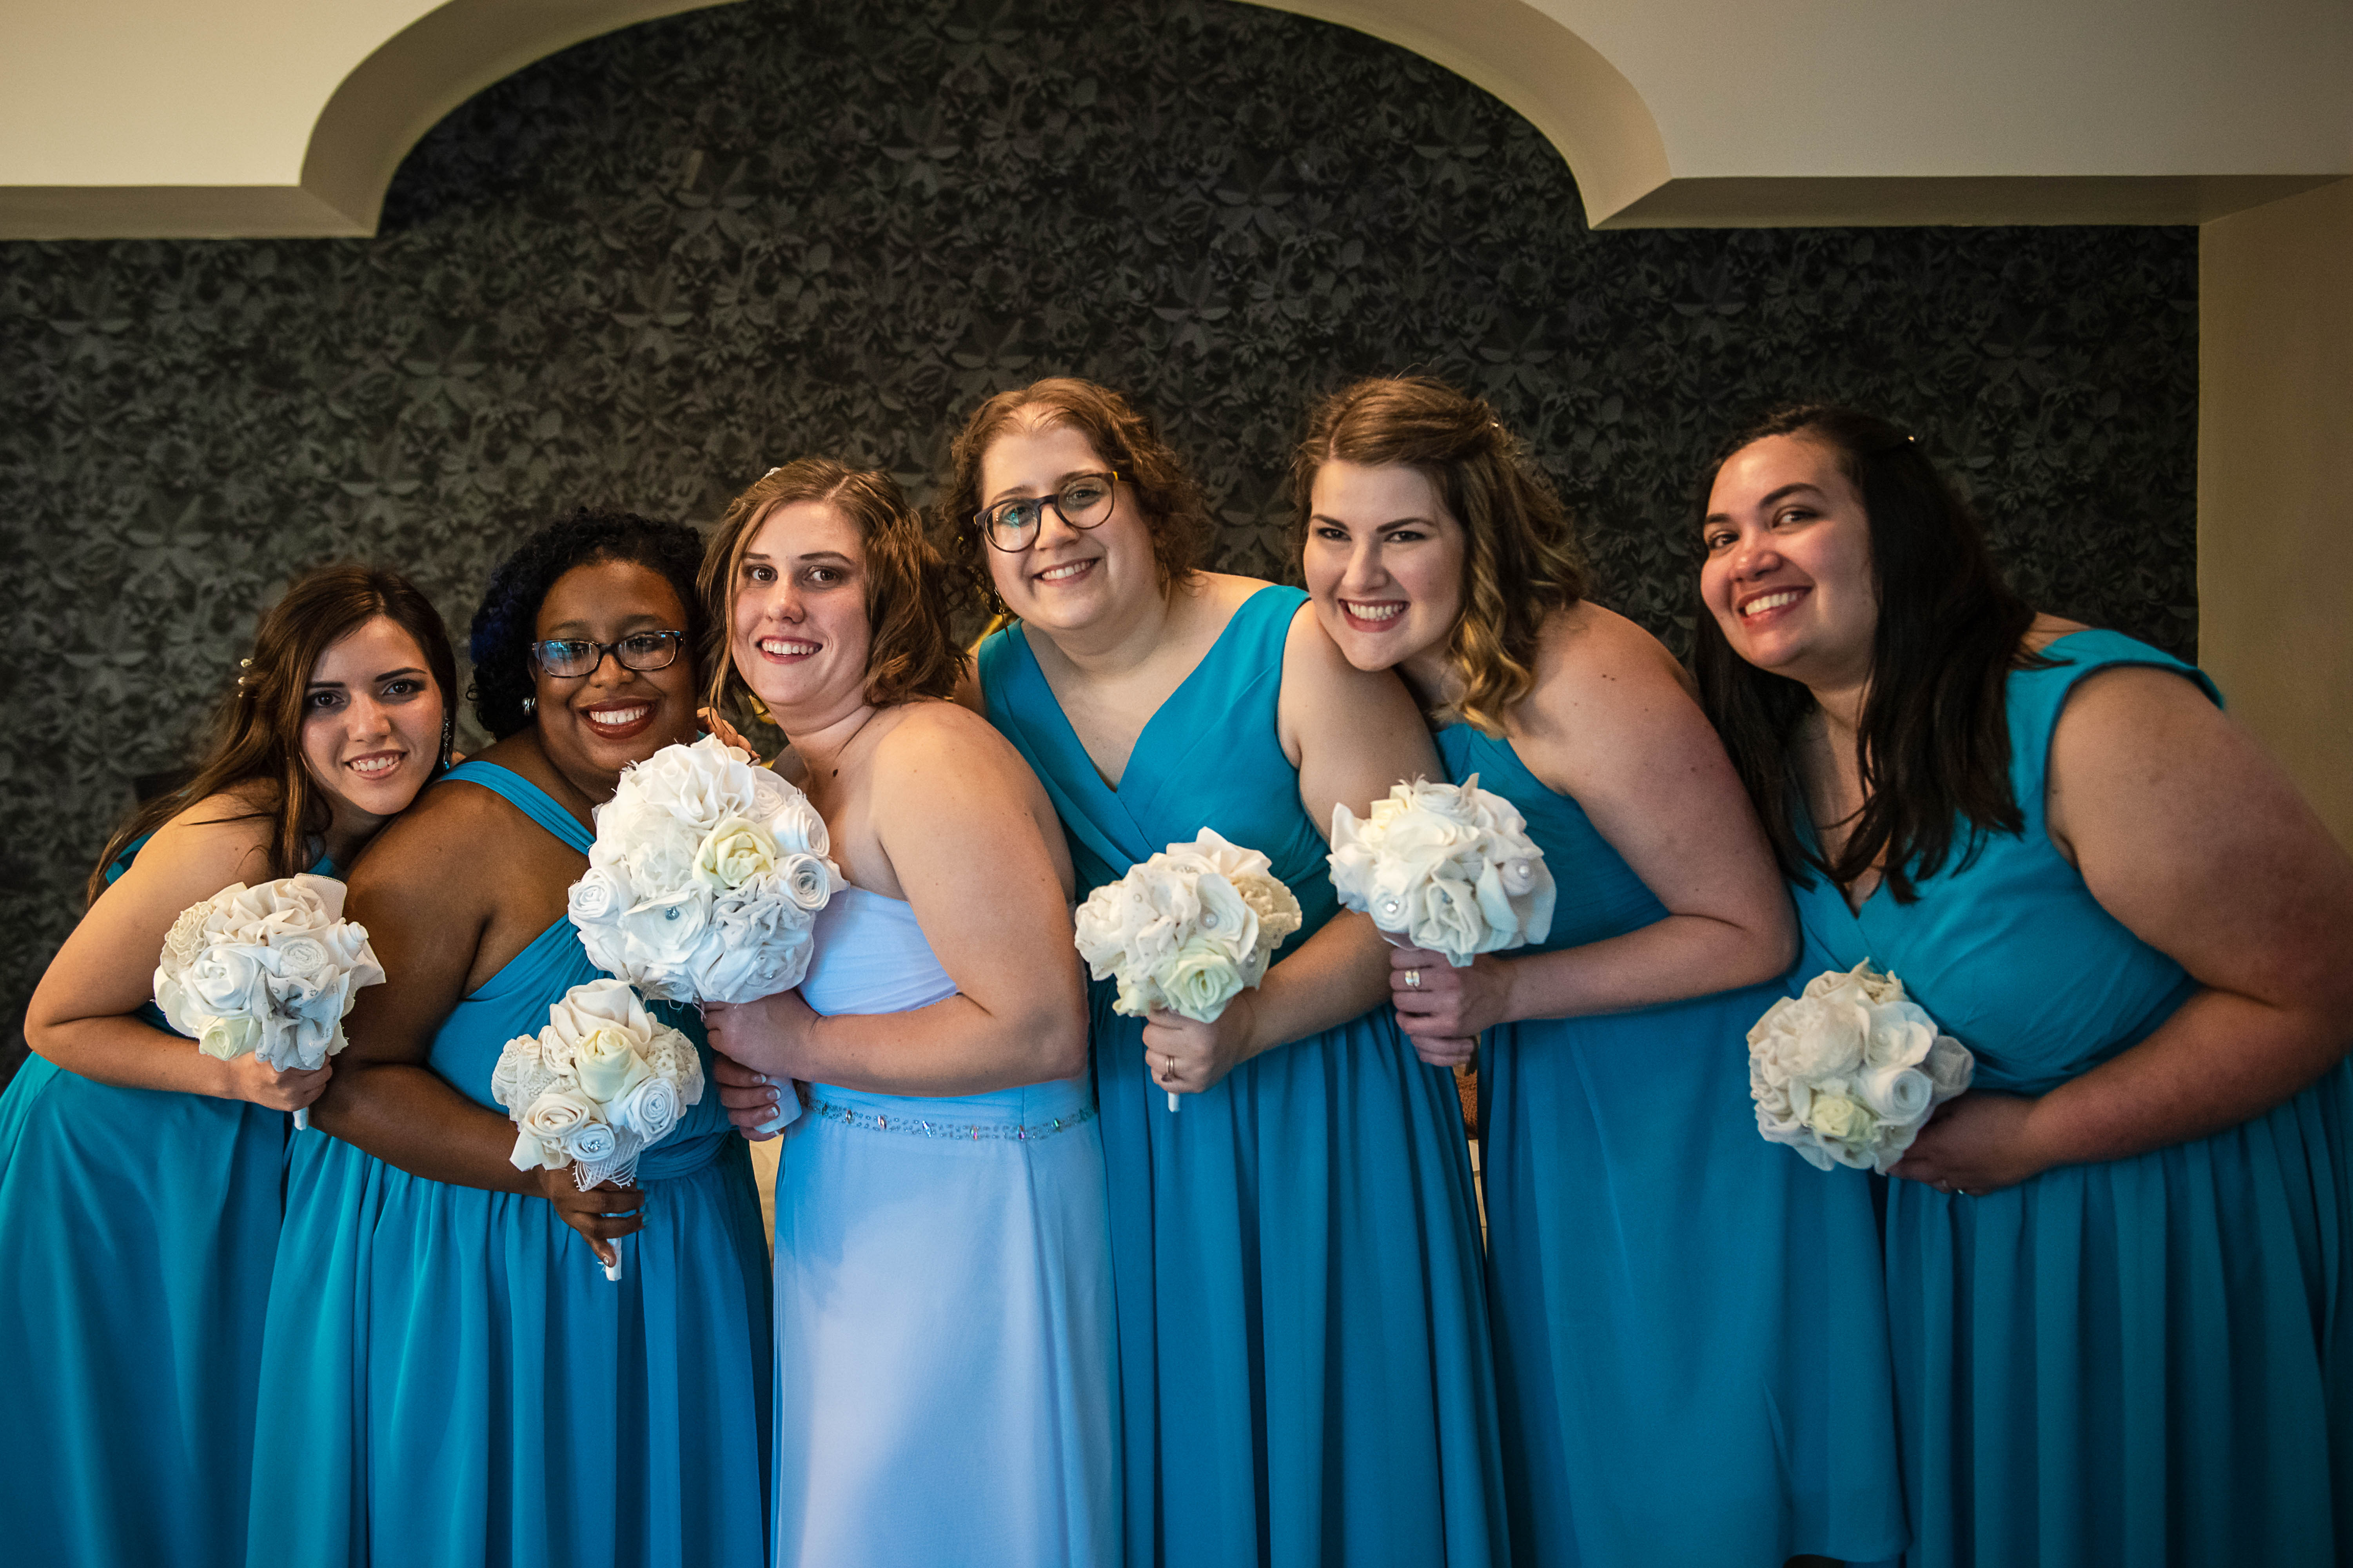 the bride with the bridesmaids and their flowers posing and smiling for the photo in Ocean Events Cancun